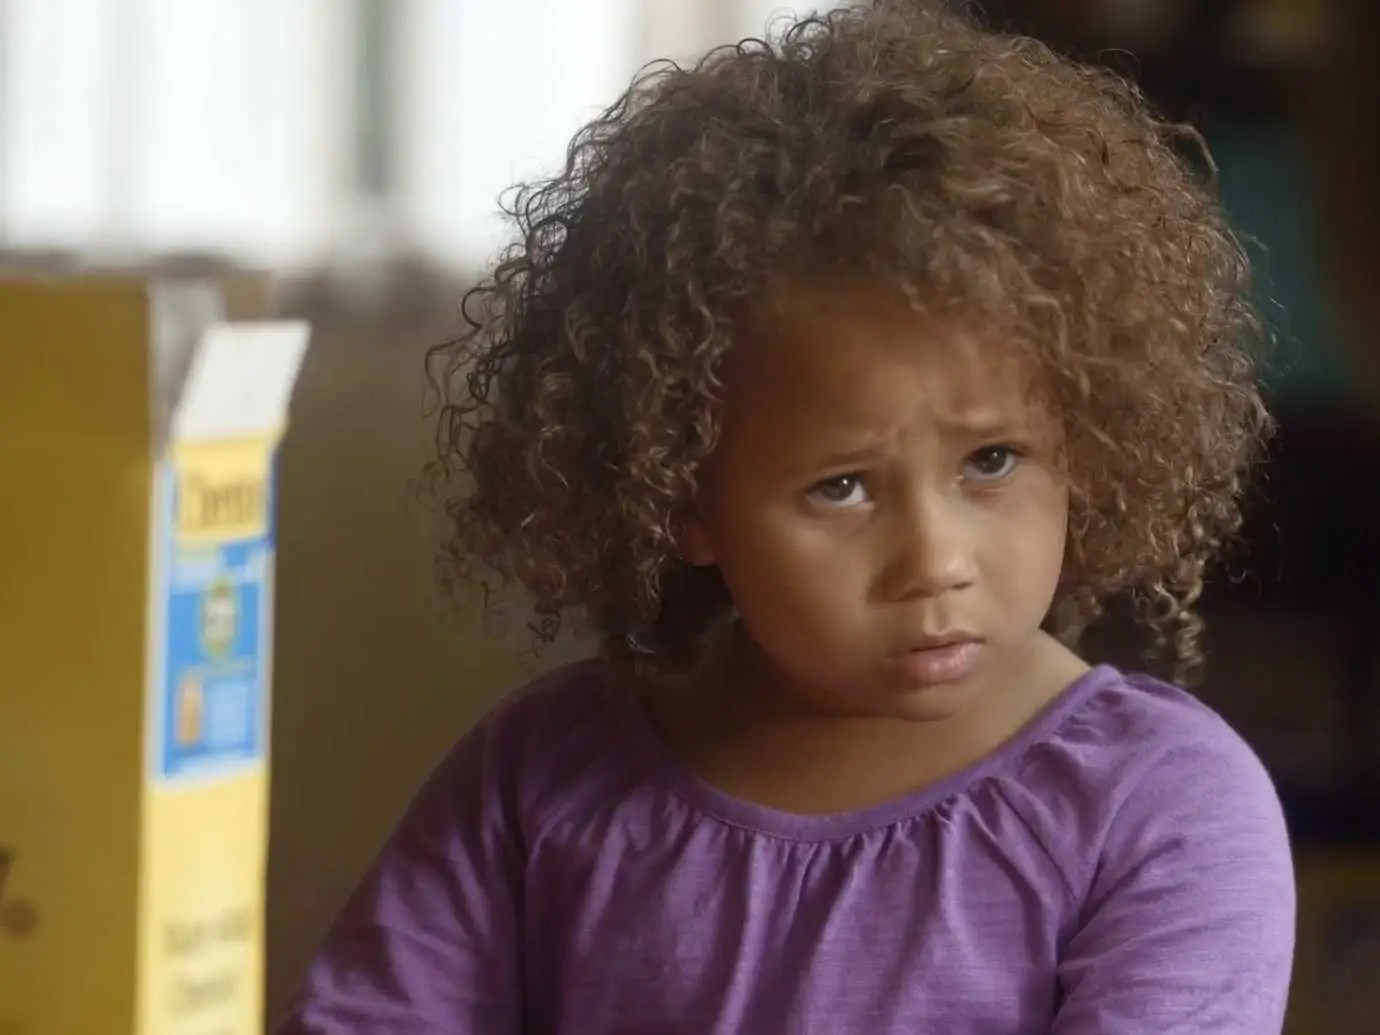 The Kid In The Mixed Race Cheerios Ad